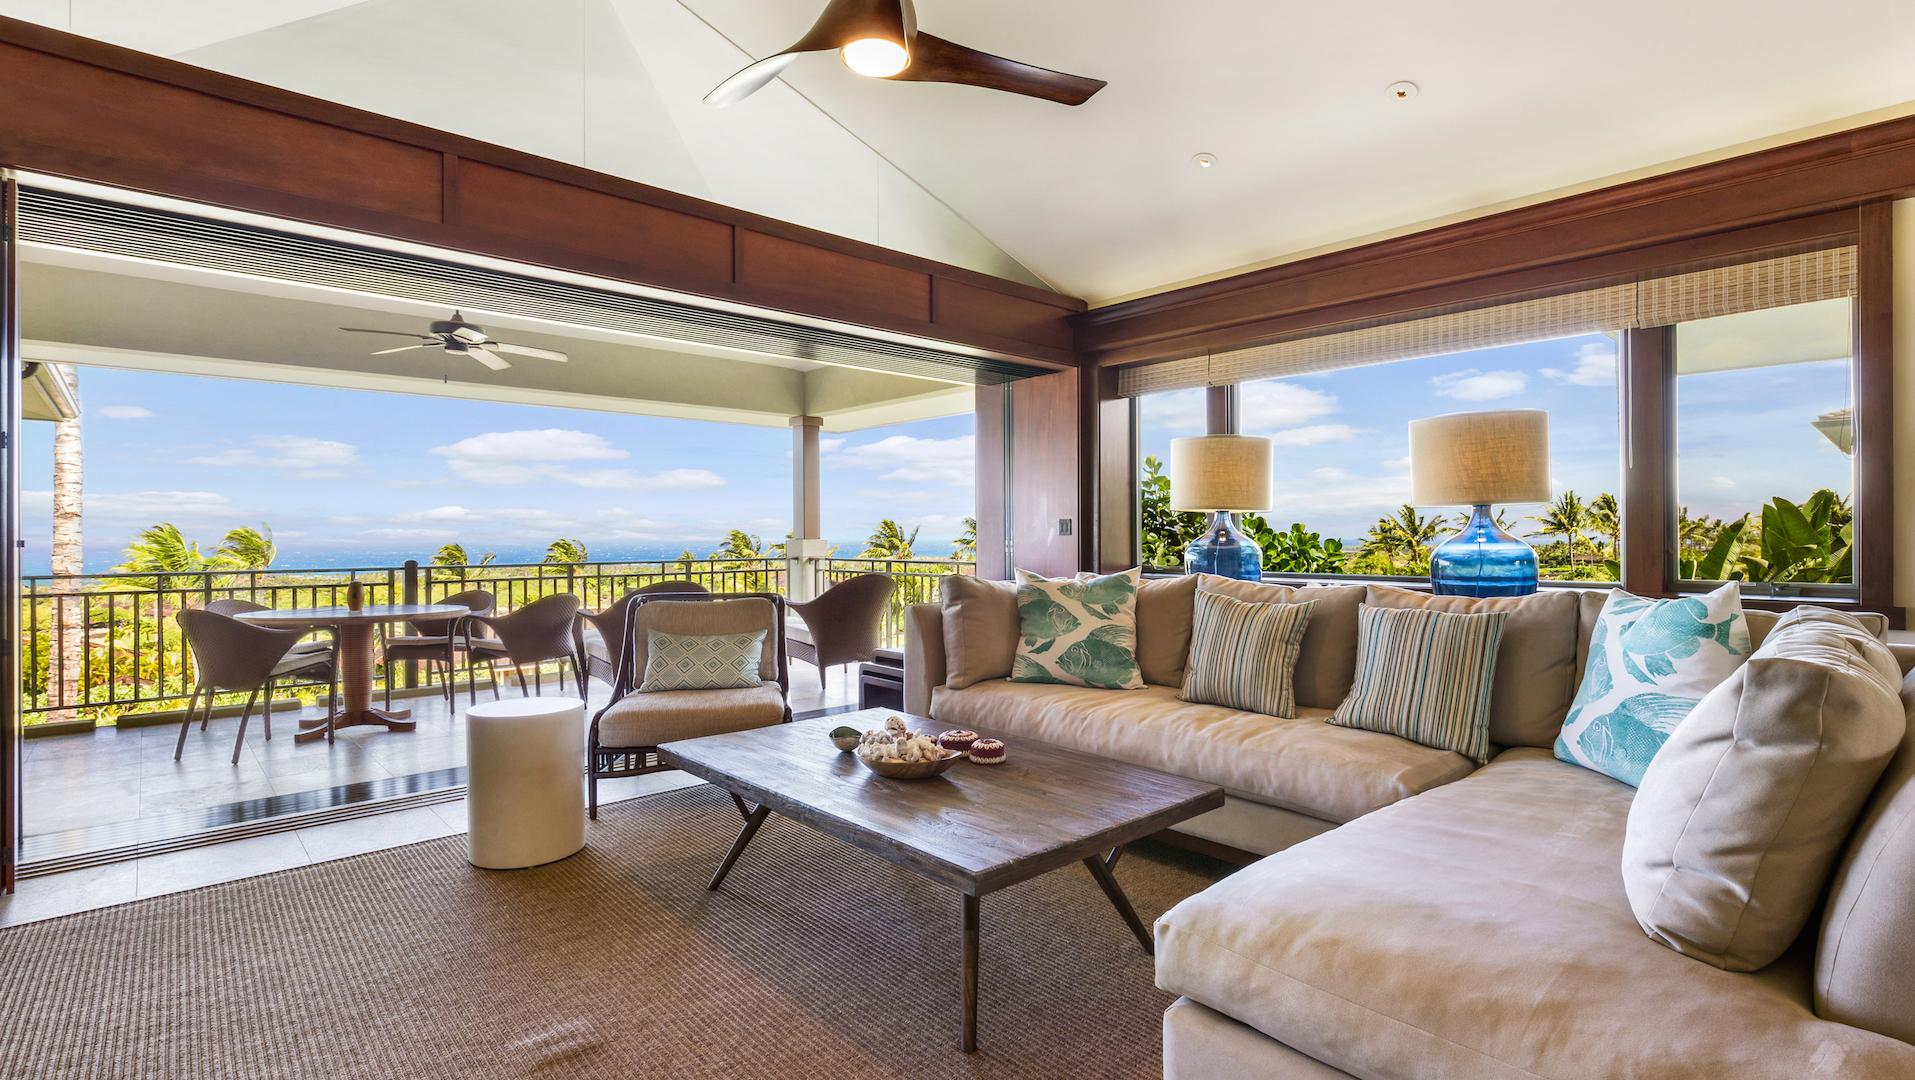 Living room and lanai with ocean views.